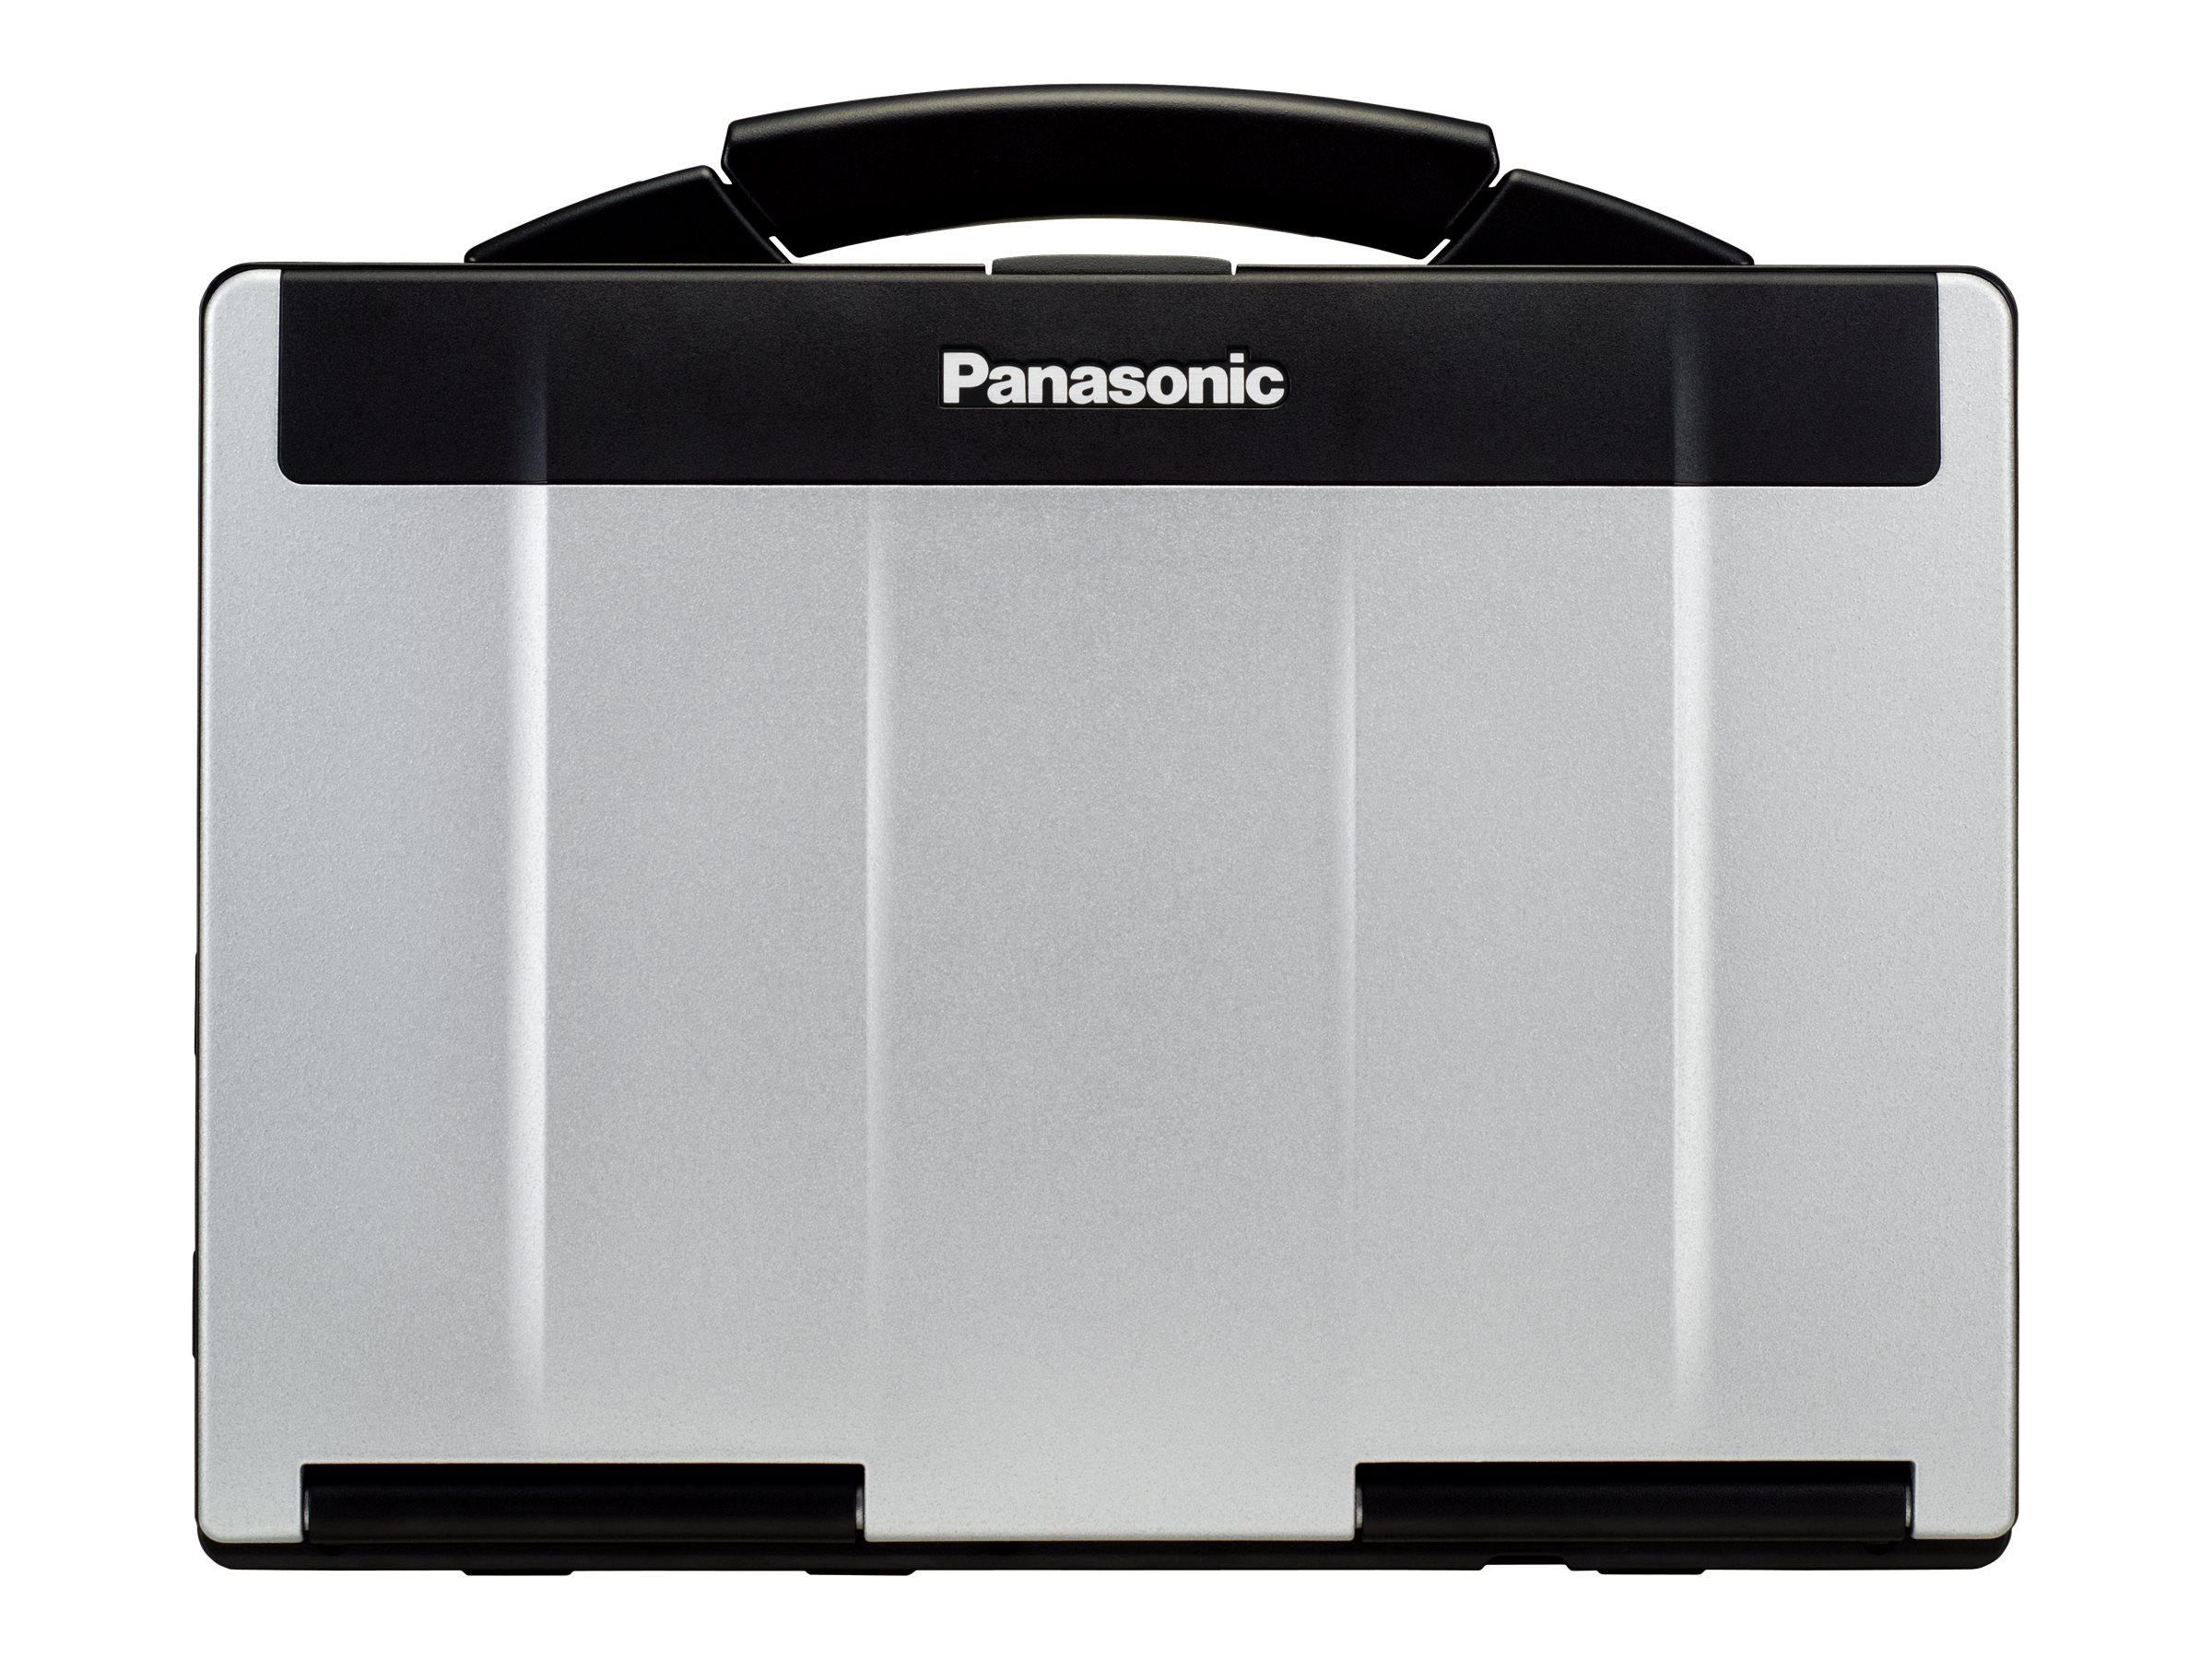 Panasonic Toughbook 53 2GHz Core i5 14in display, CF-532JCZYTM